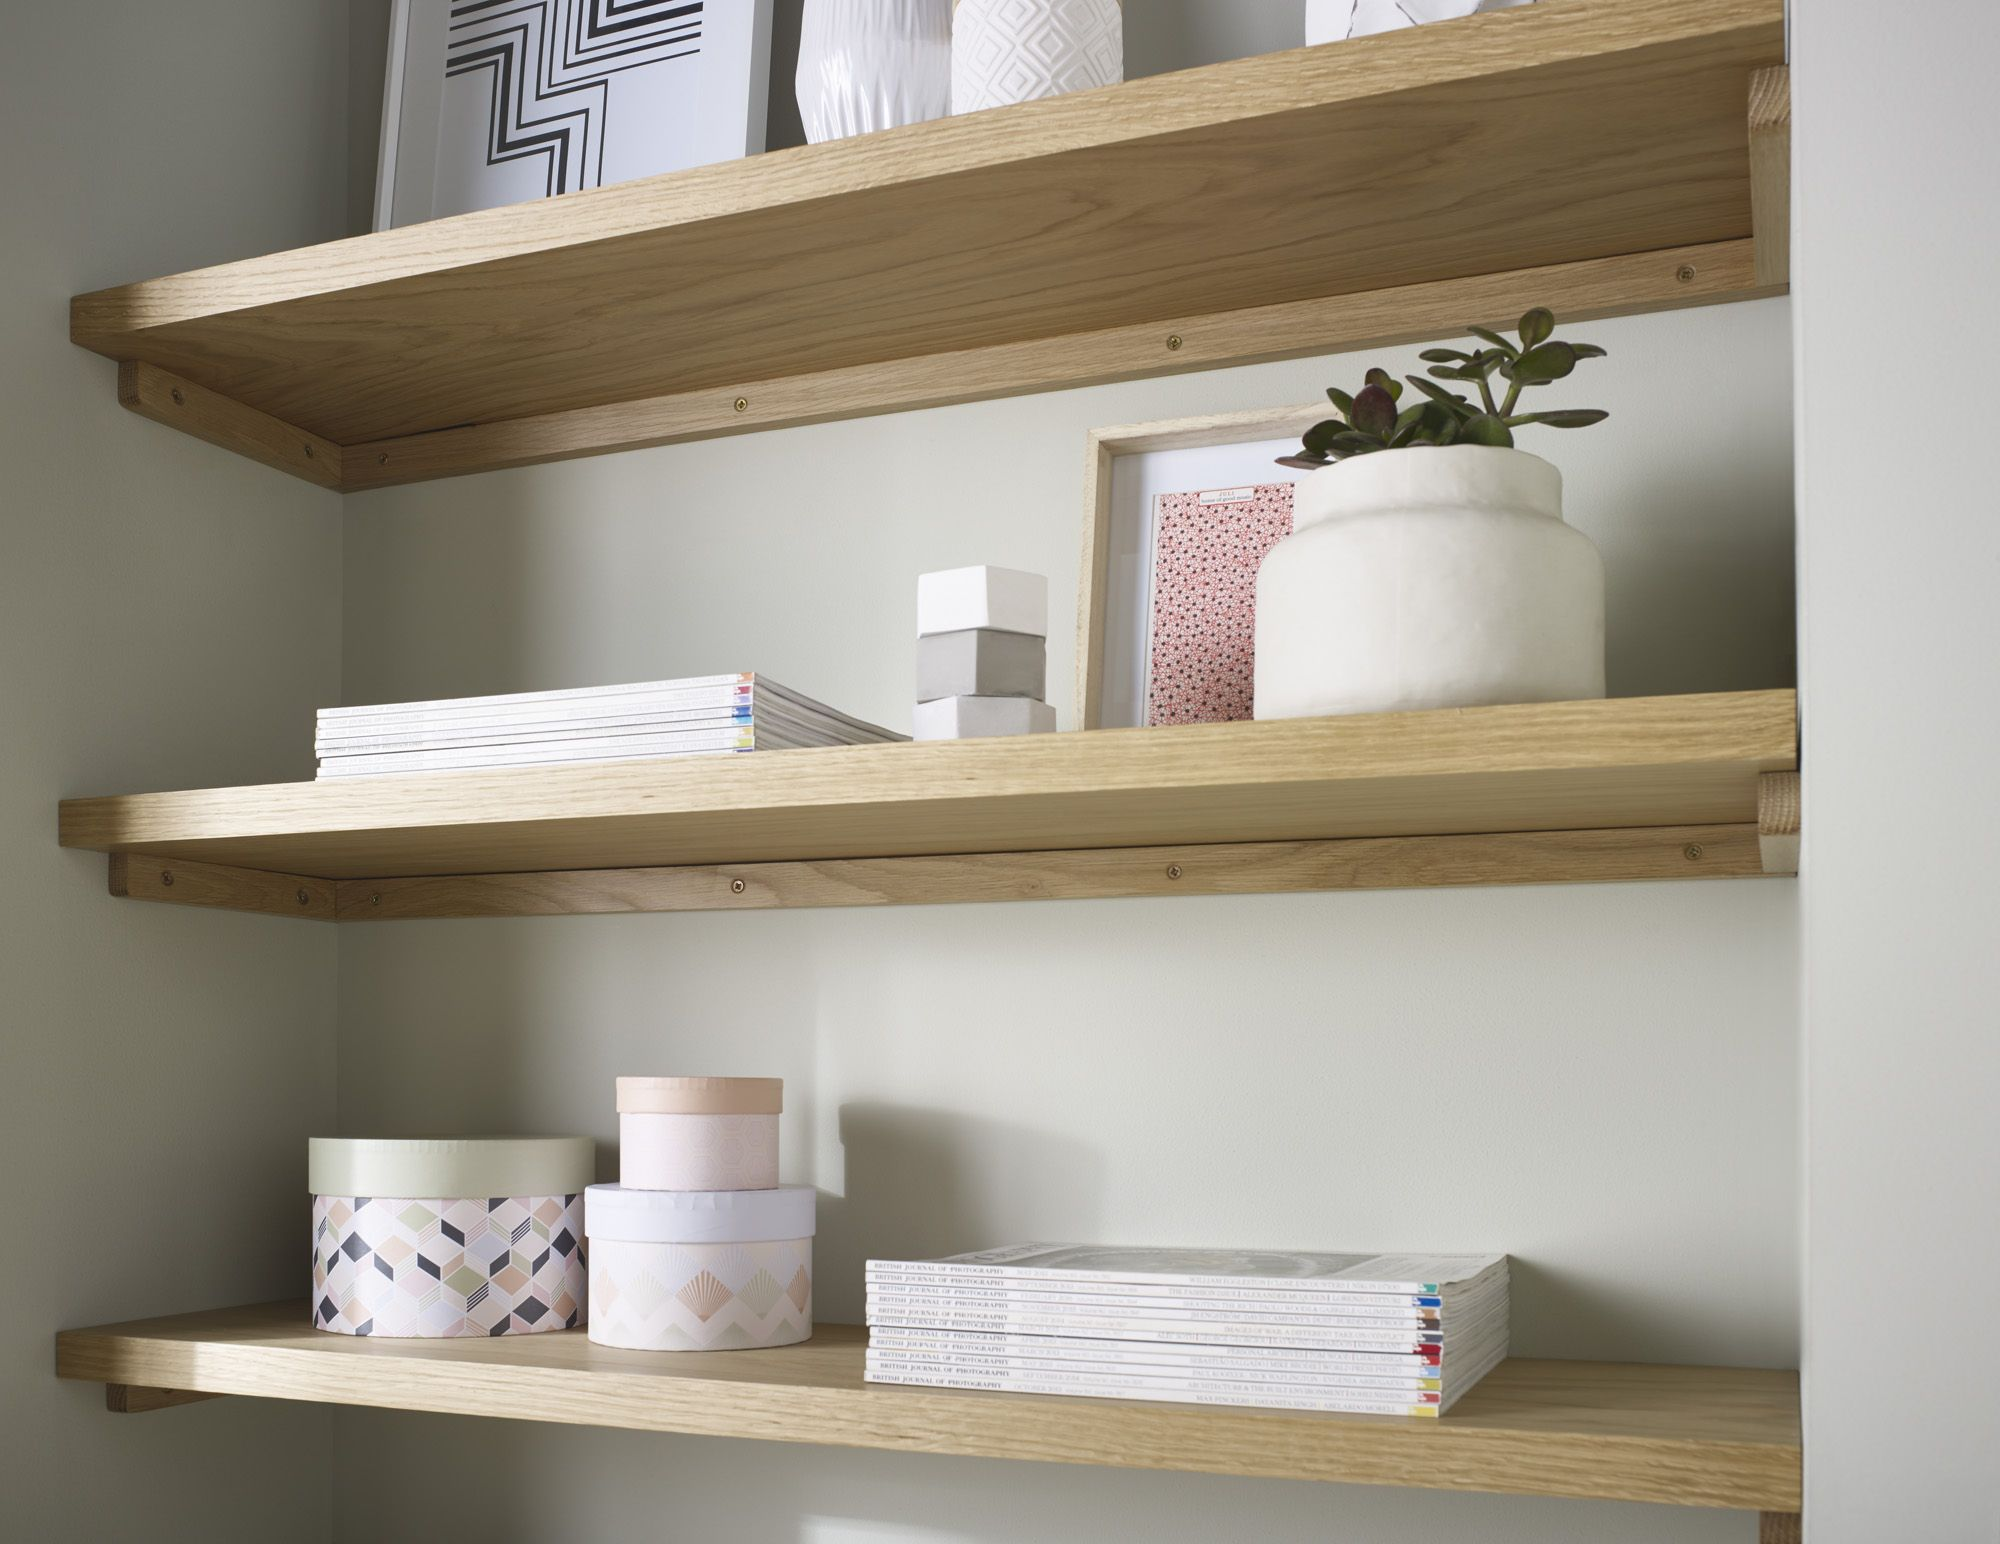 solid oak floating shelf custom made measure customise length depth thickness thick white shelves heavy duty iron brackets pine homebase cherry ledge kitchen rail storage shower